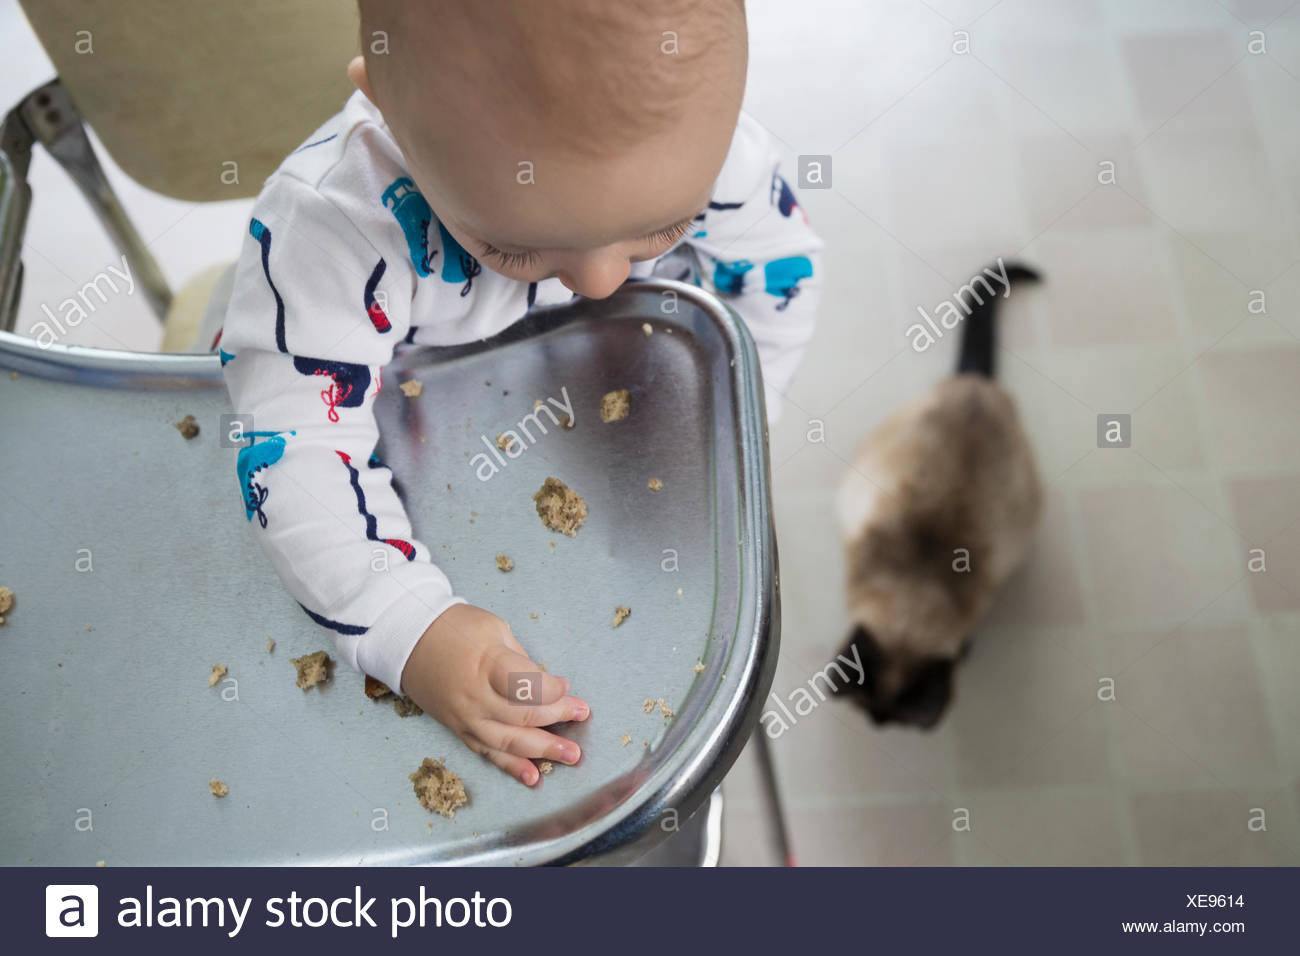 Baby boy high chair dropping food to cat - Stock Image